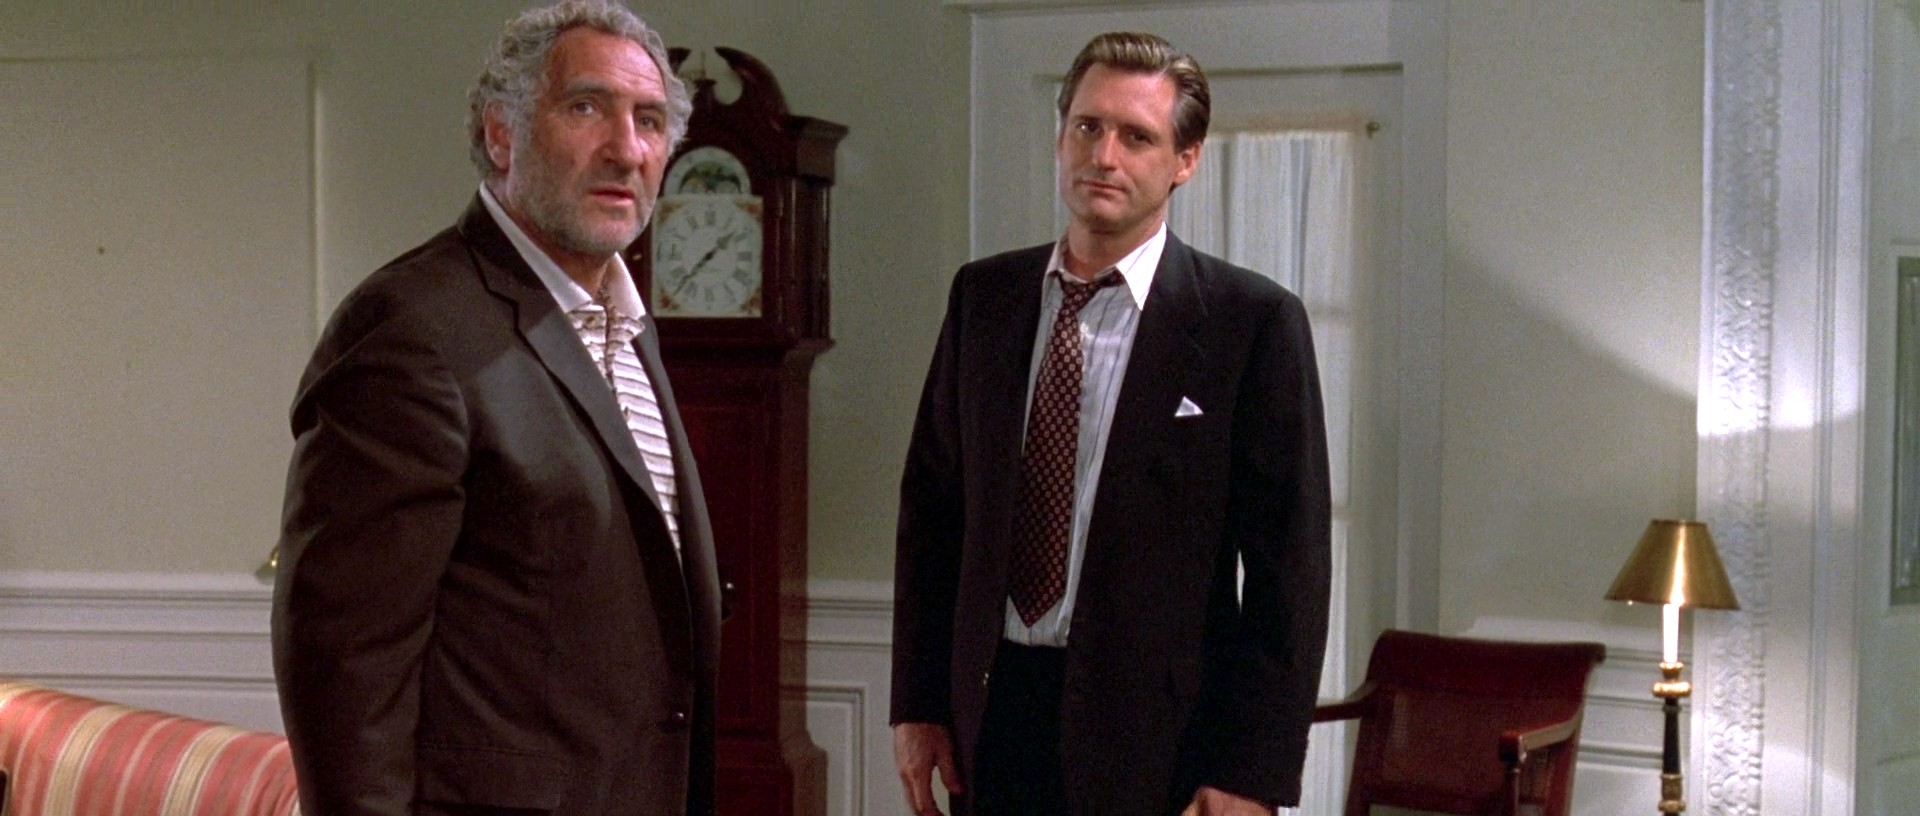 Bill Pullman and Judd Hirsch Return for Independence Day 2